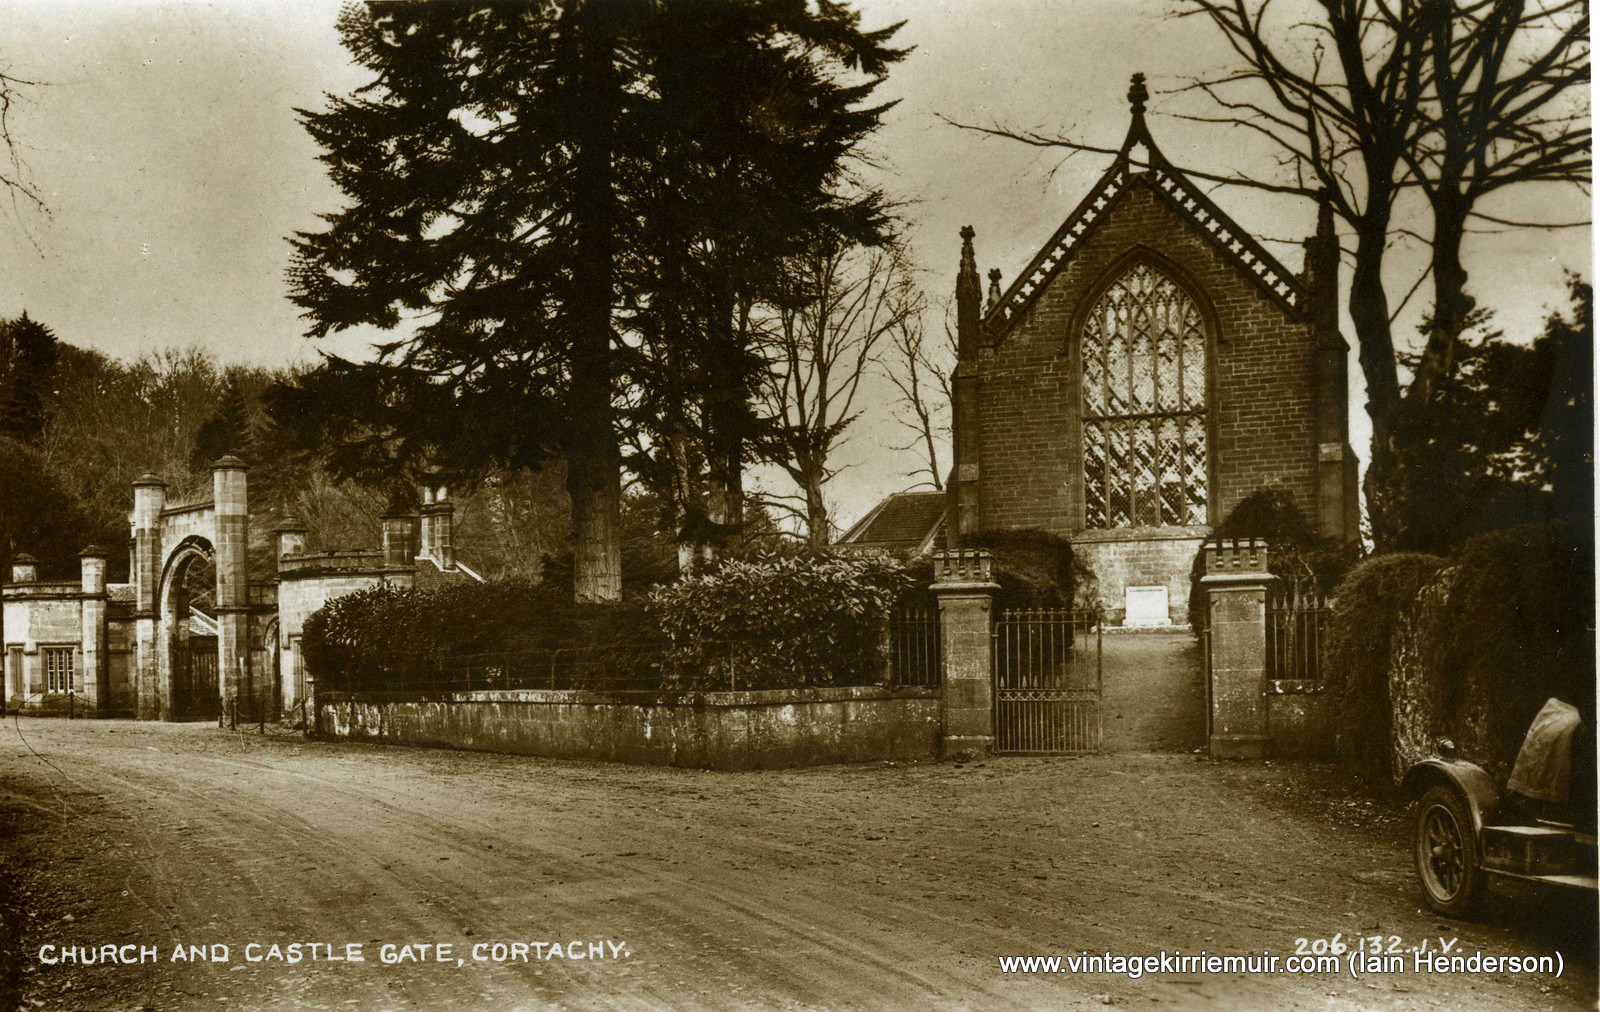 Church and Castle Gate, Cortachy